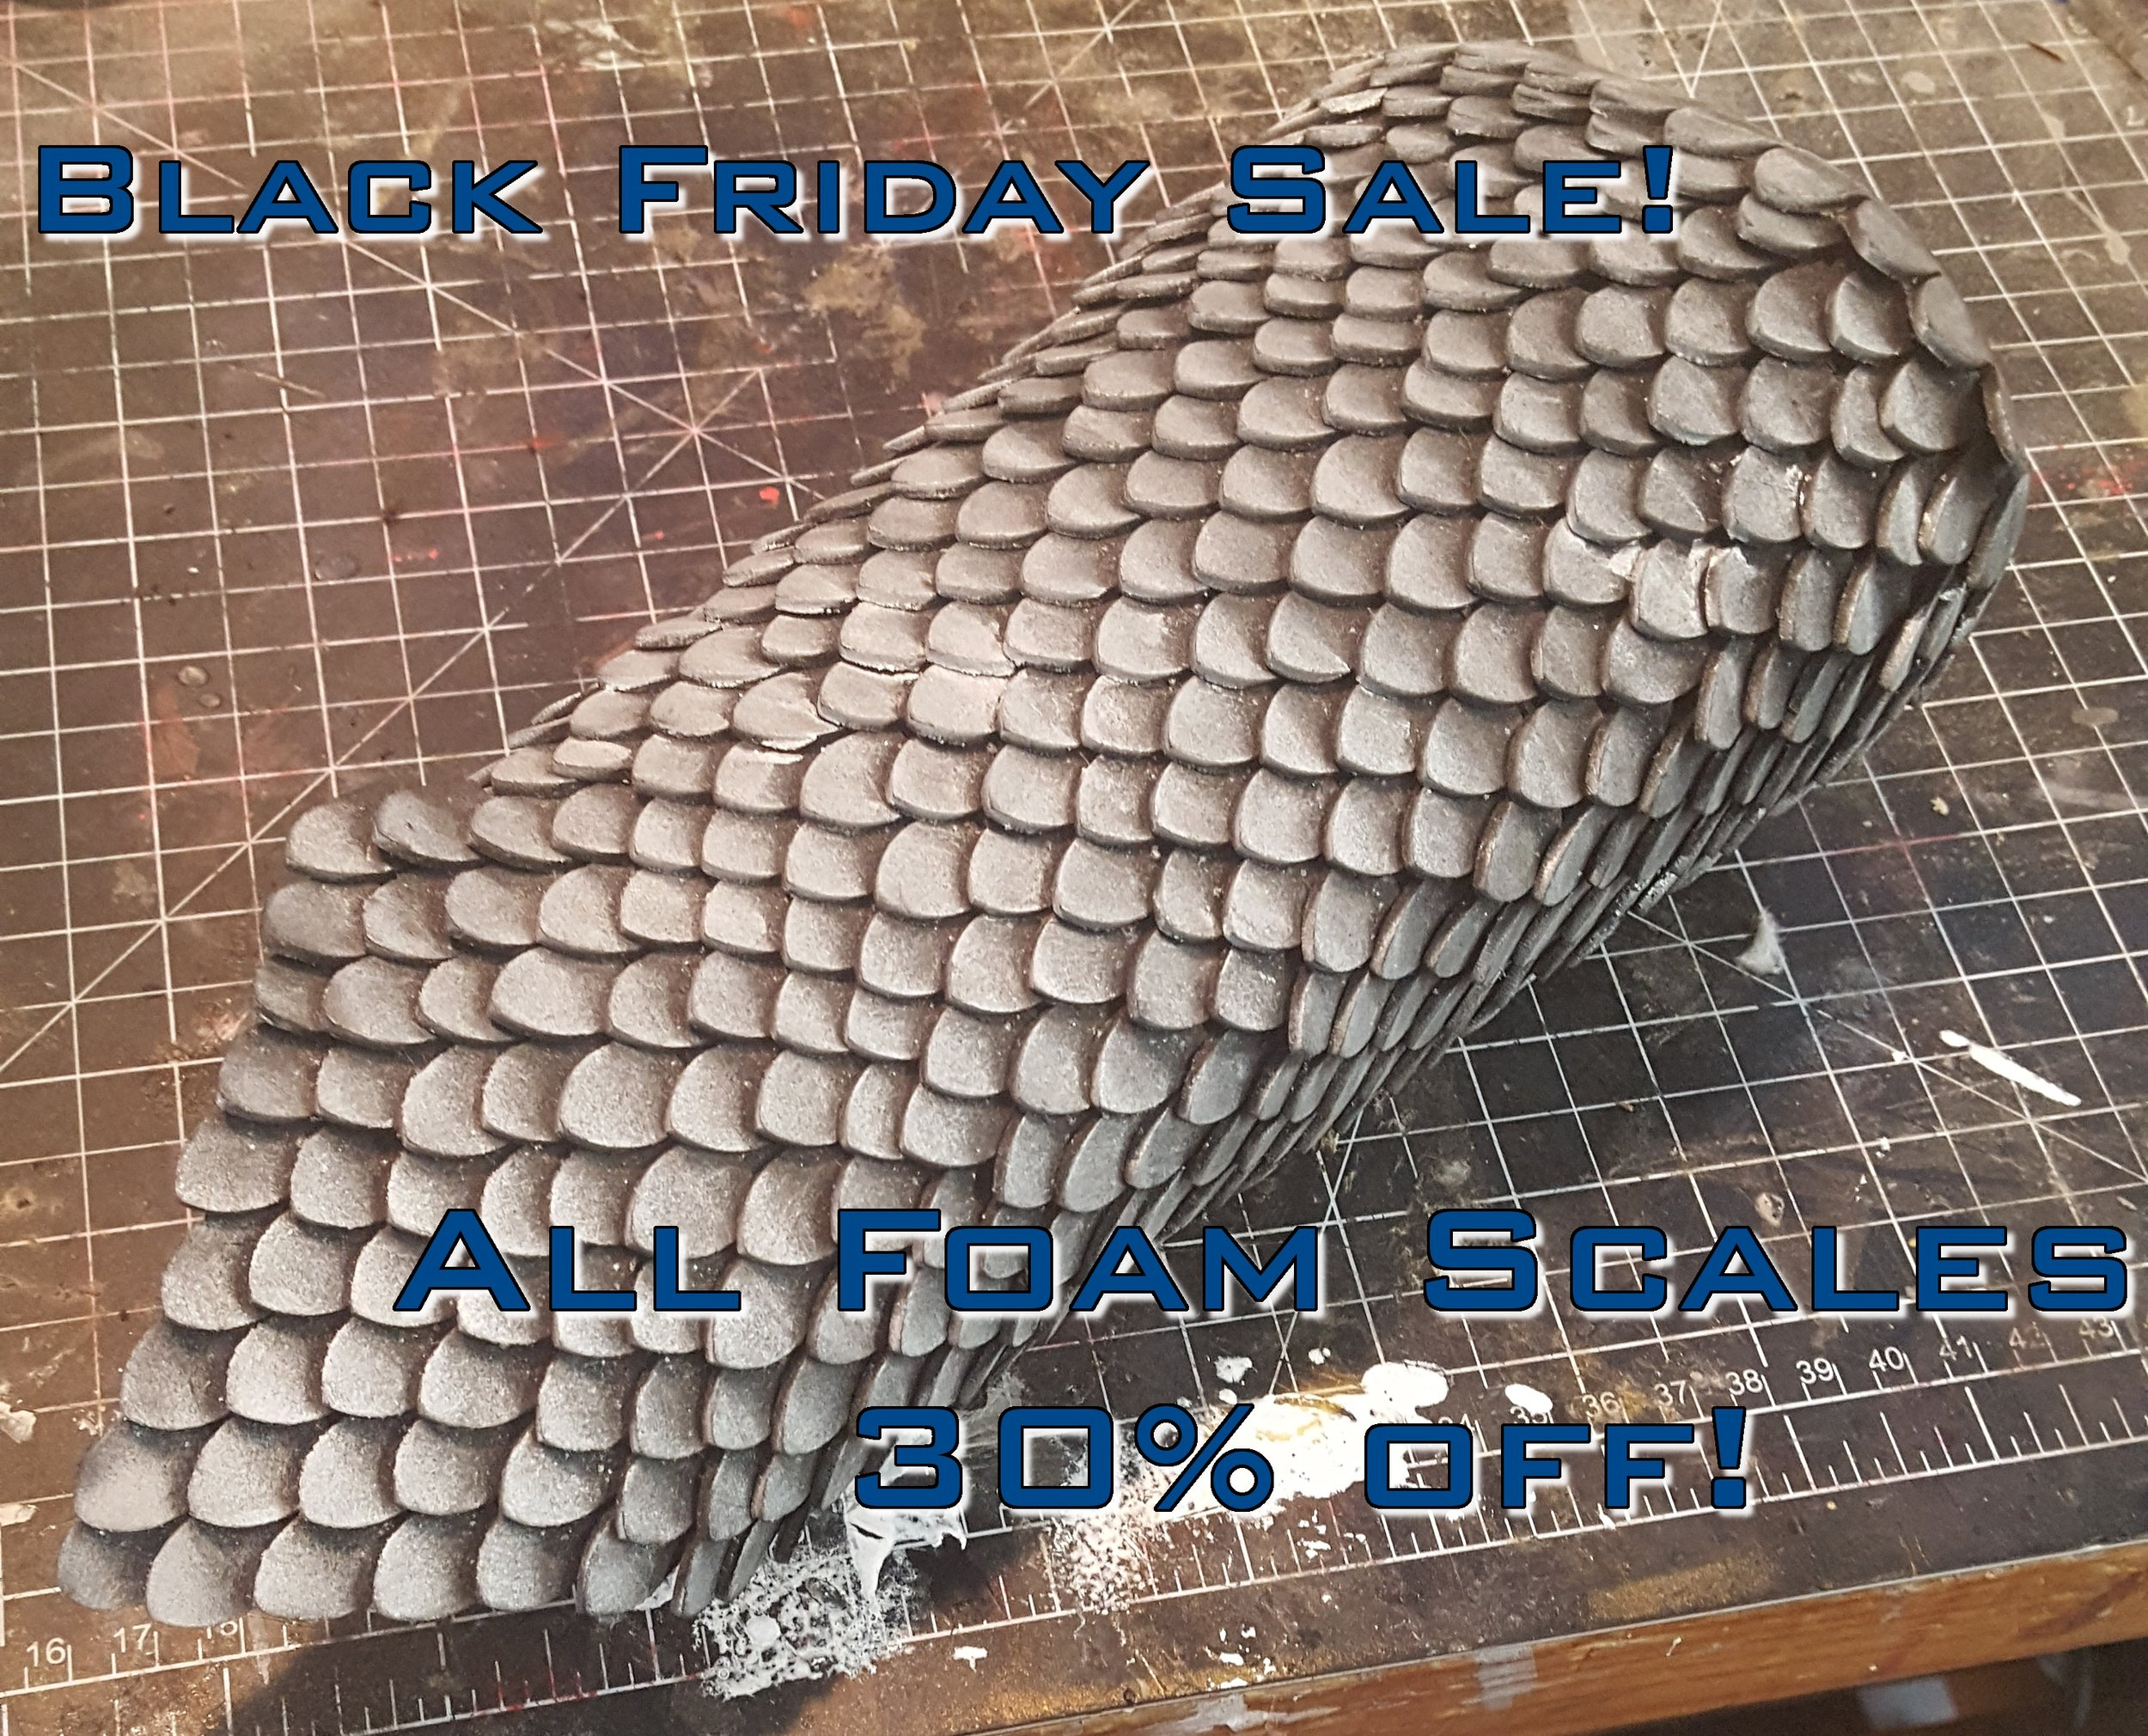 We are having a sale on all foam scales this weekend! Sale Ends Monday! Time to stock up on all those foam scales you need for future projects! They also make a great gift to the cosplayer or crafter in your life!